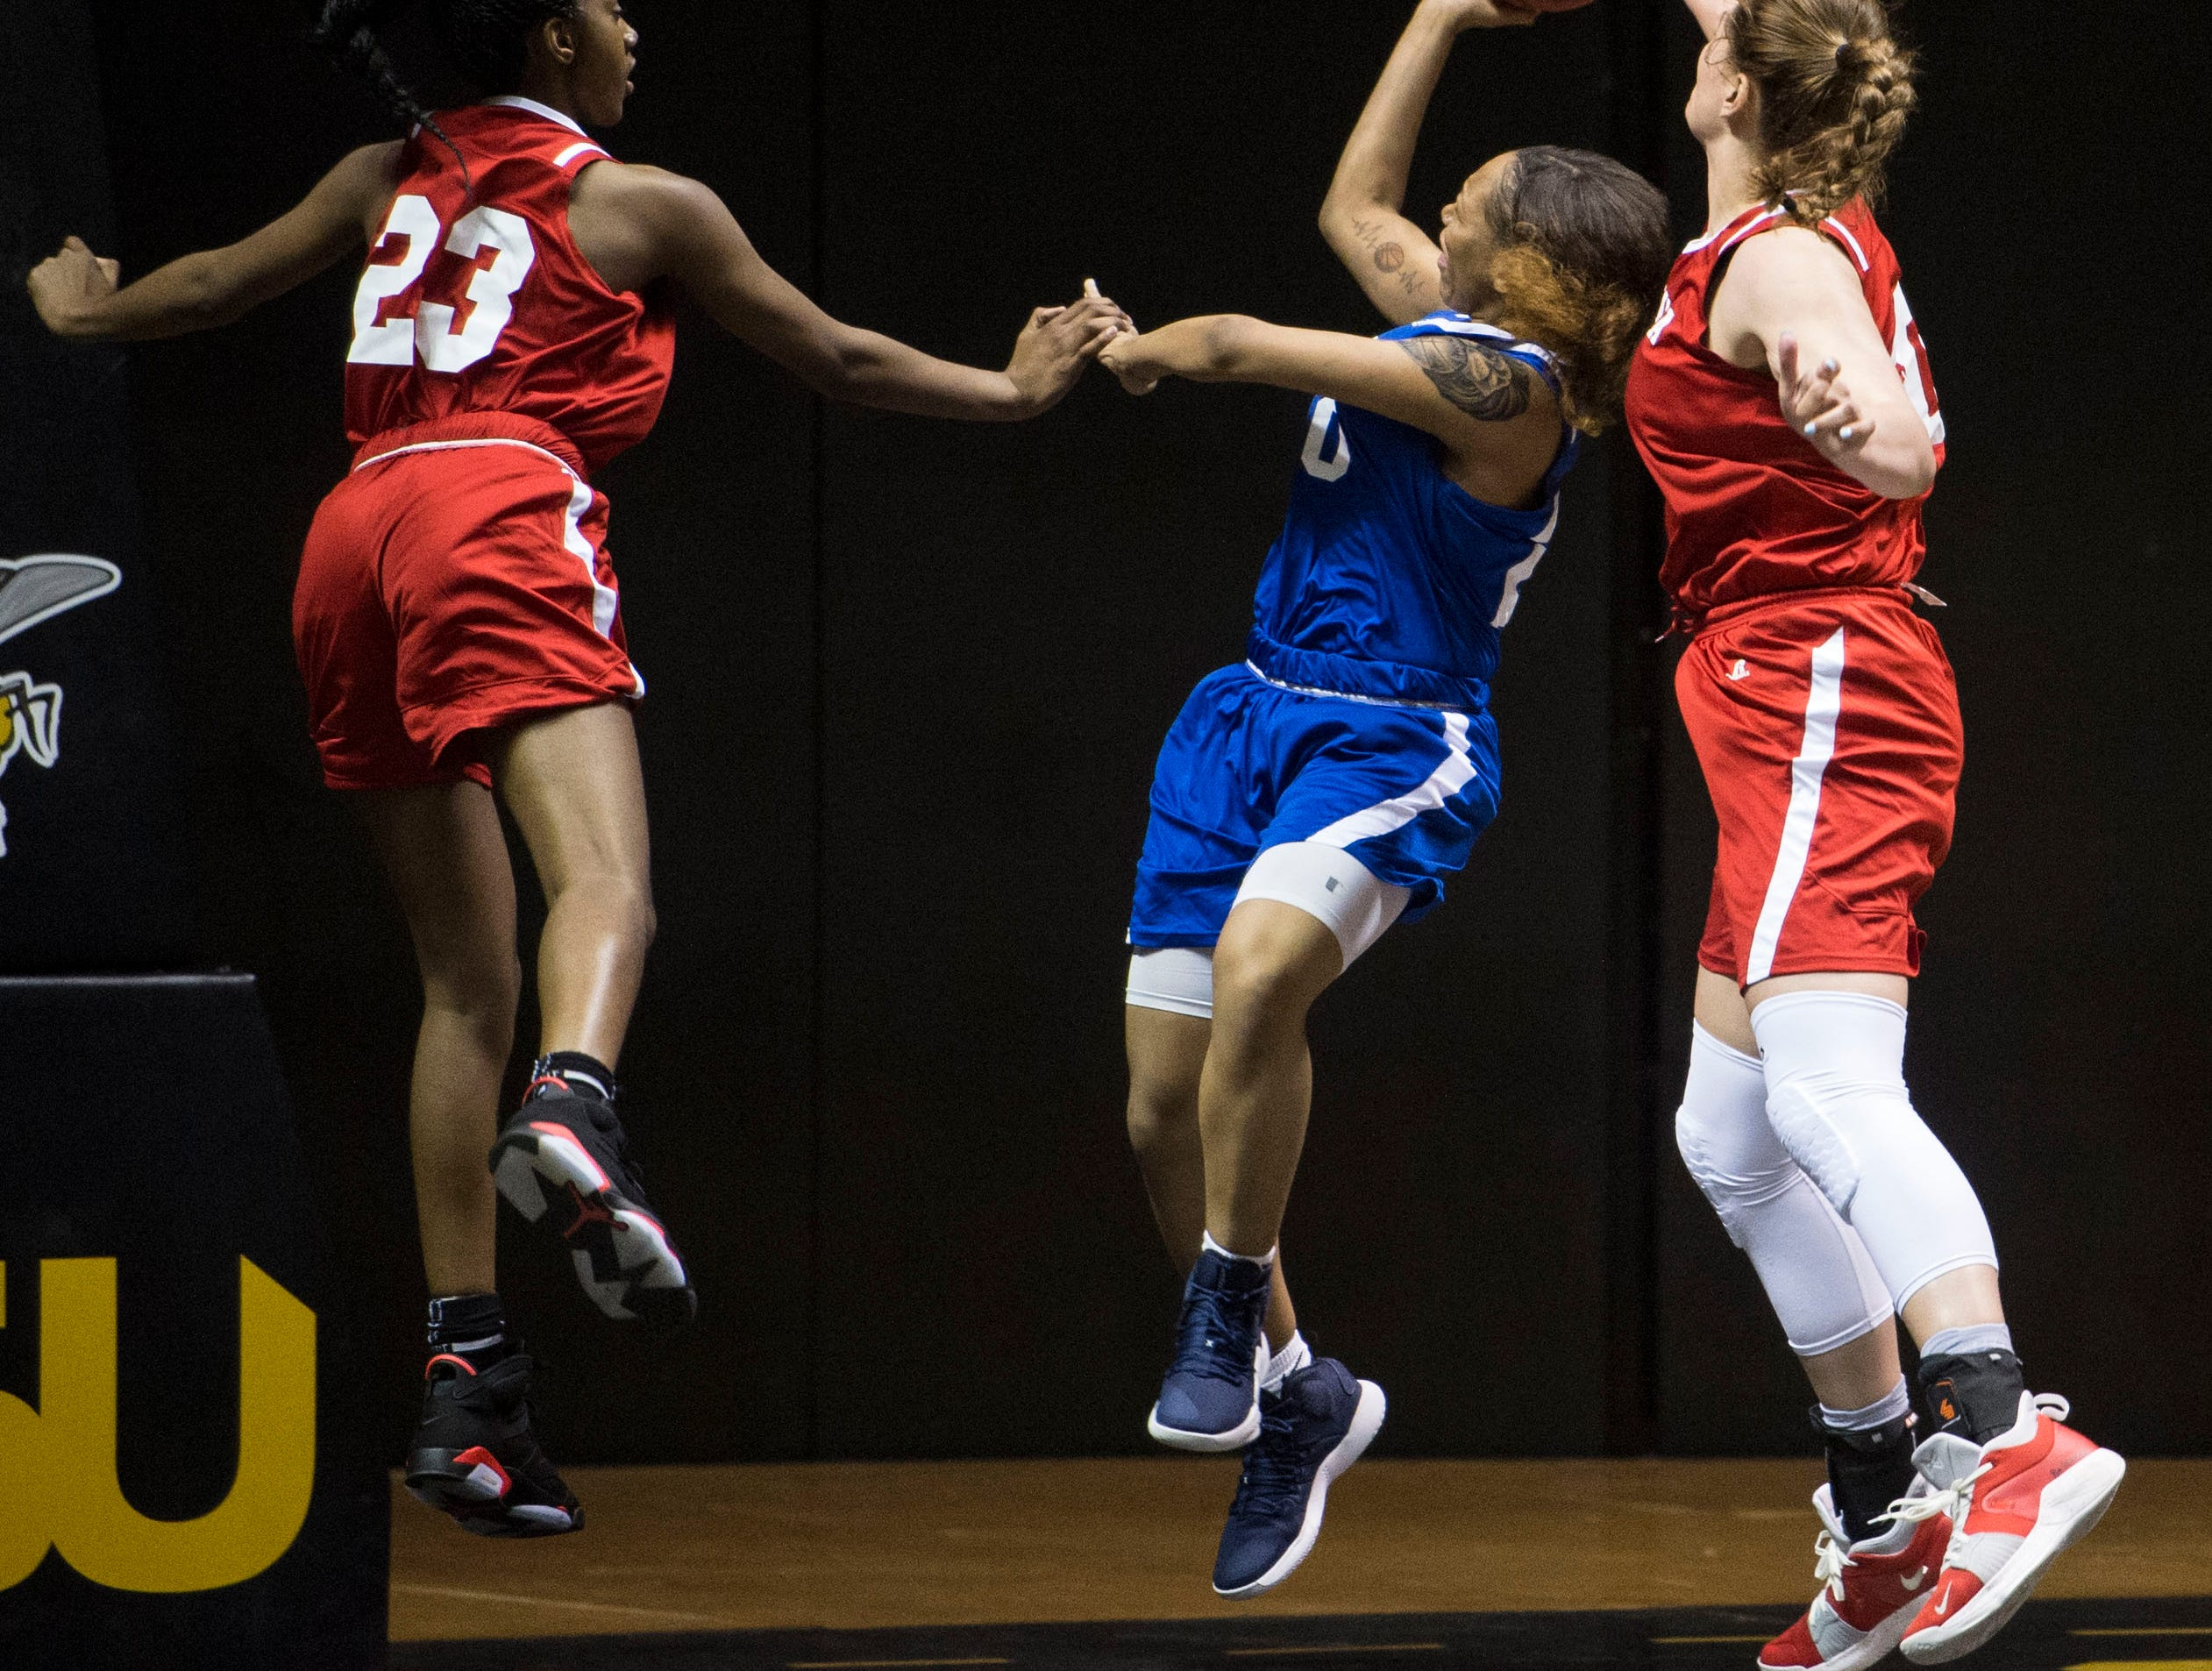 Mississippi's Jayla Alexander (20) is blocked by Alabama's River Baldwin (30) as she goes up for a layup during the Alabama-Mississippi All-Star game at the Dunn-Oliver Acadome in Montgomery, Ala., on Friday, March 15, 2019. Alabama All-stars lead the Mississippi All-stars 48-34 at halftime.